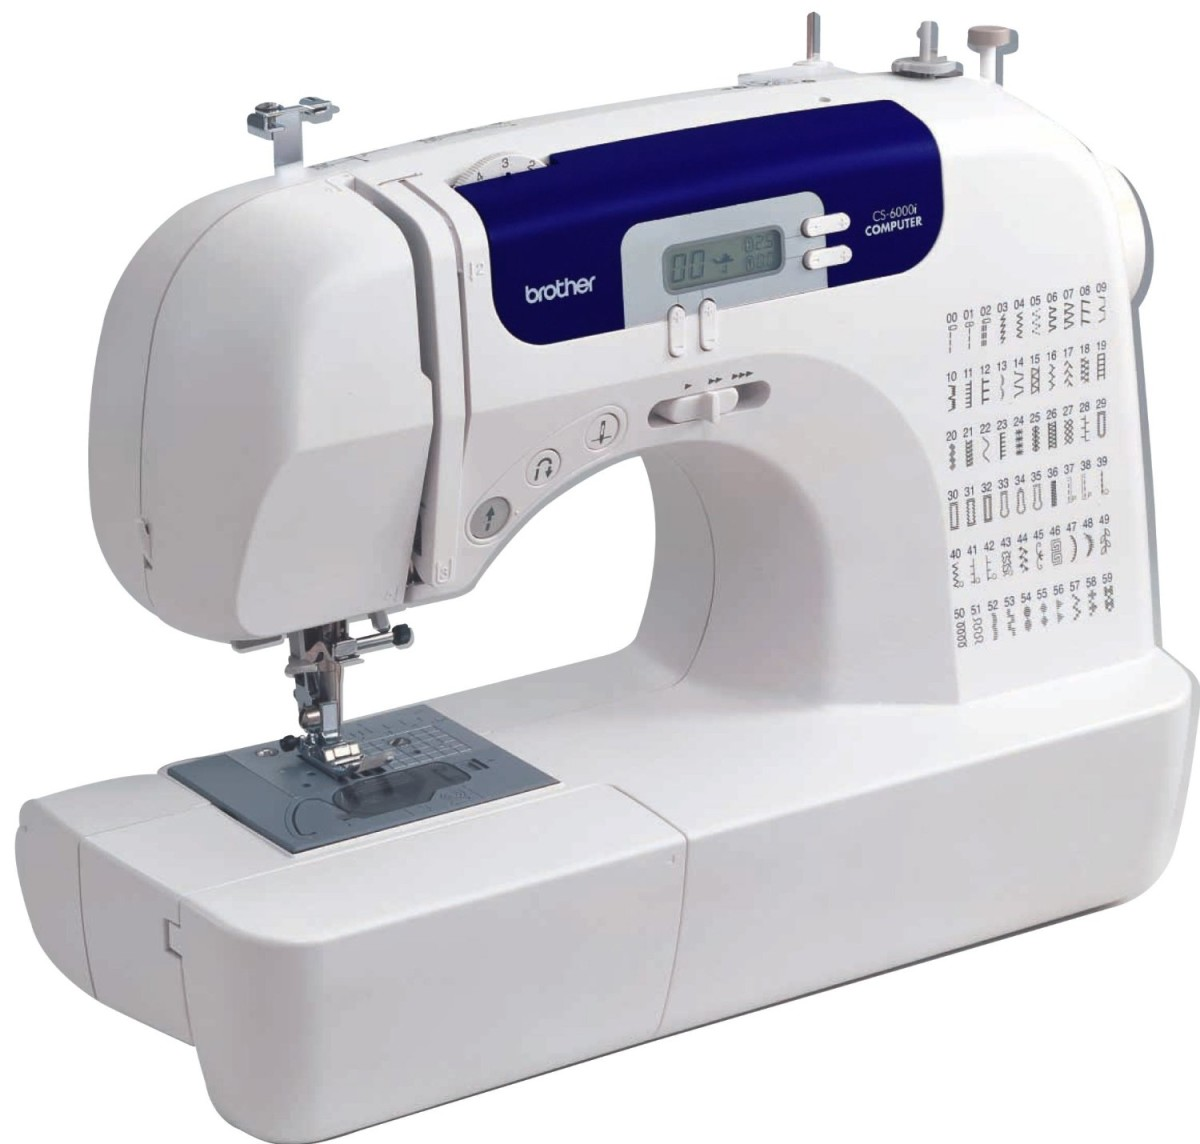 Brother CS6000i Advance Sew Affordable 60-Stitch ...